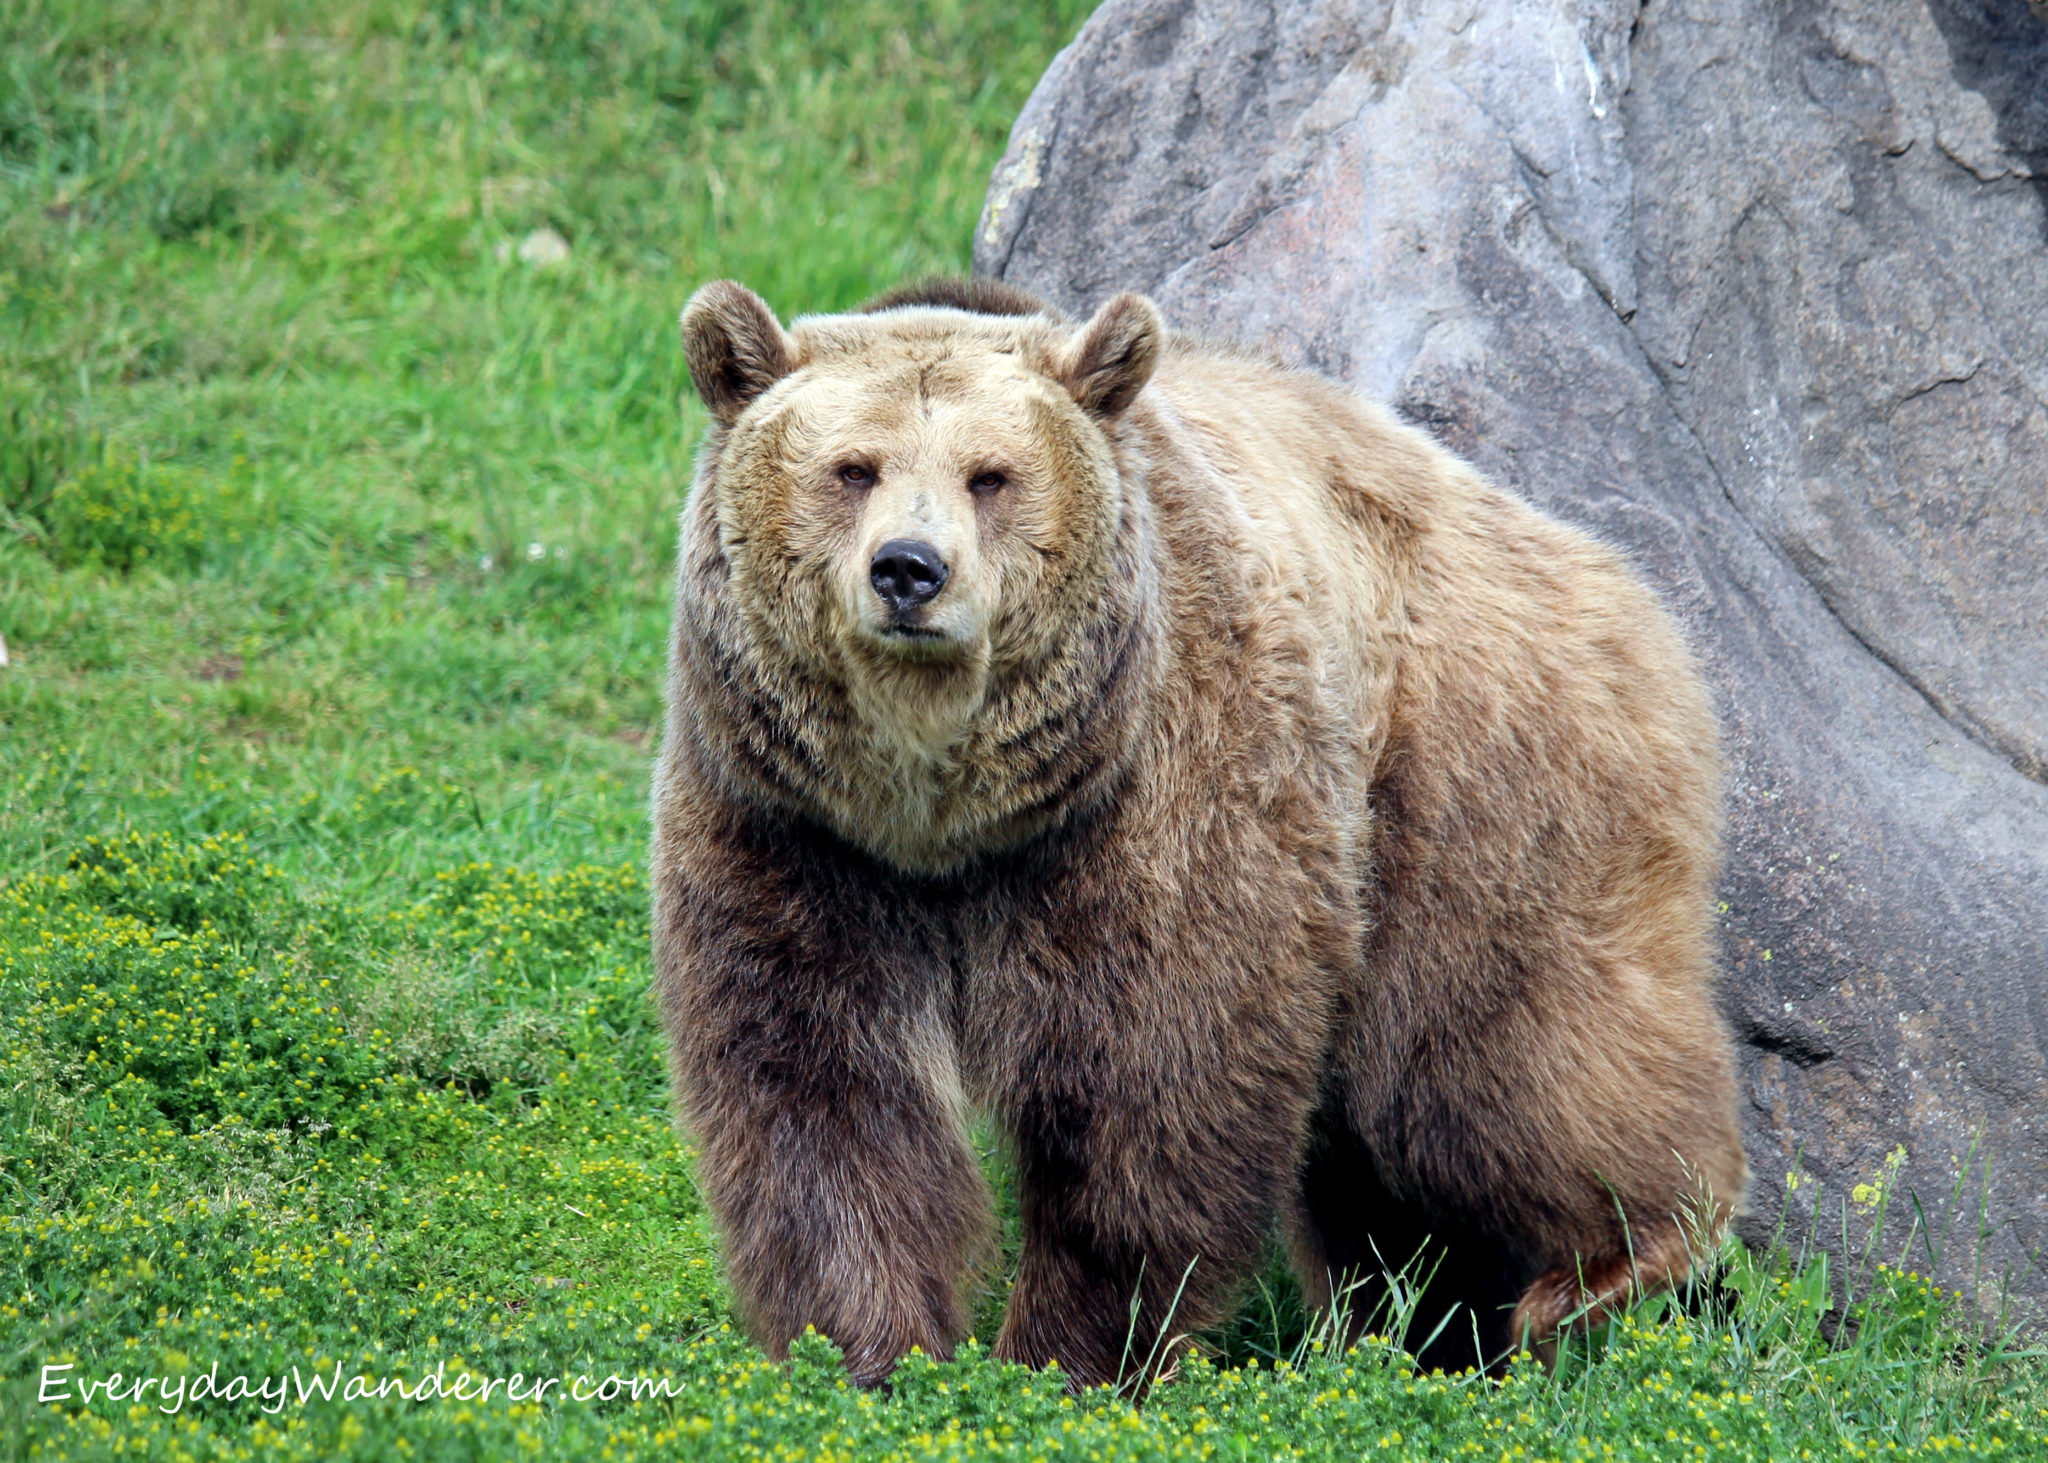 Be Bear Aware with These Tips to Avoid (and Survive) a Bear Encounter